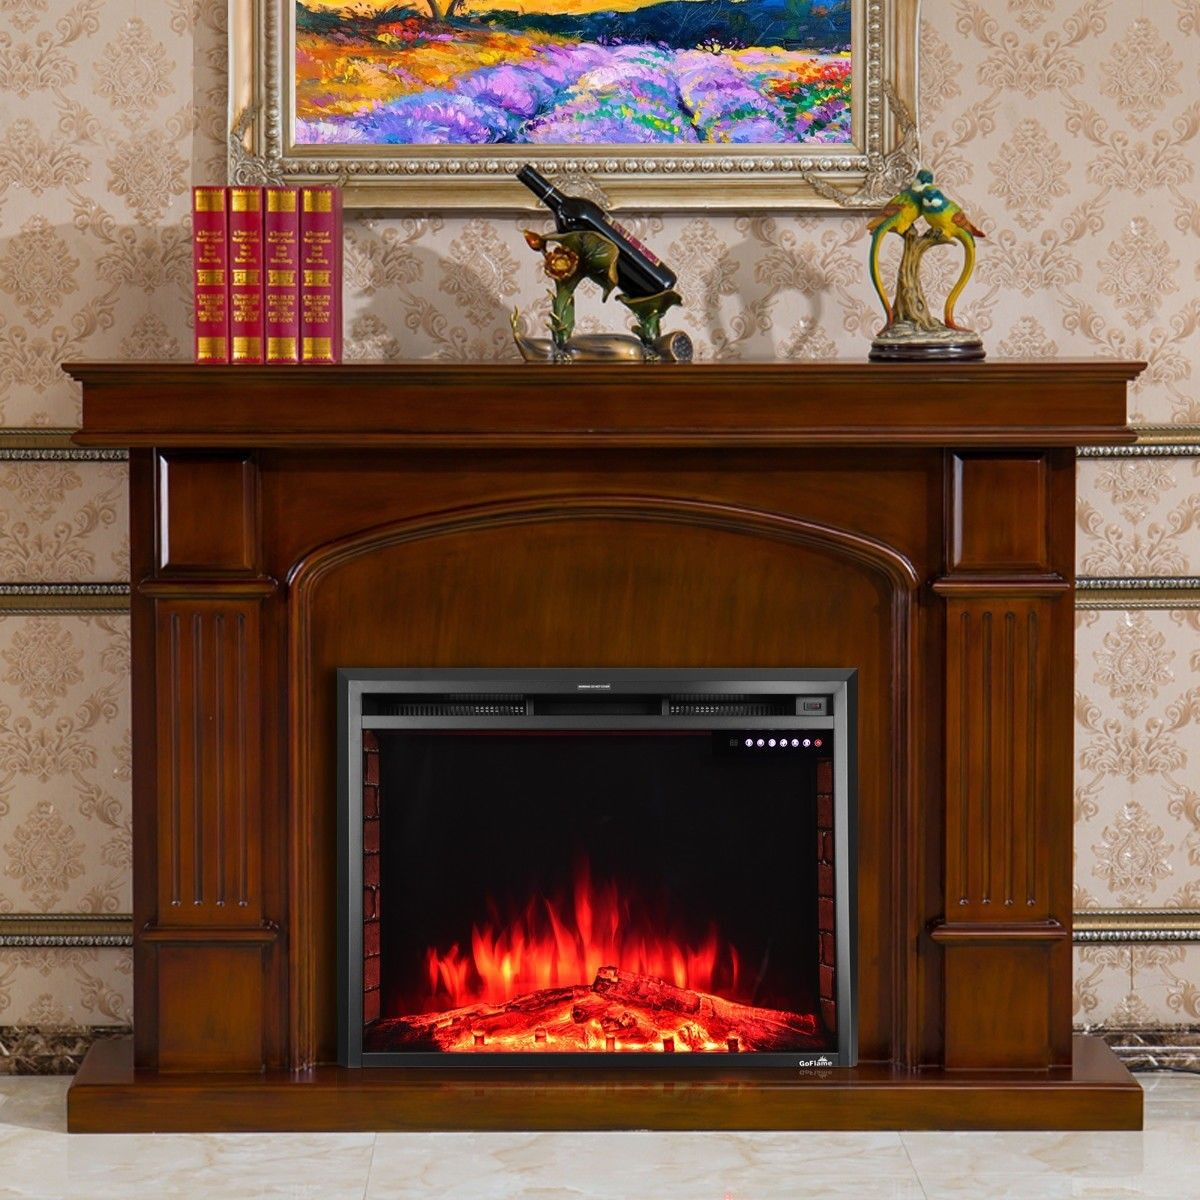 36 electric fireplace insert freestanding stove heater home rh pinterest com